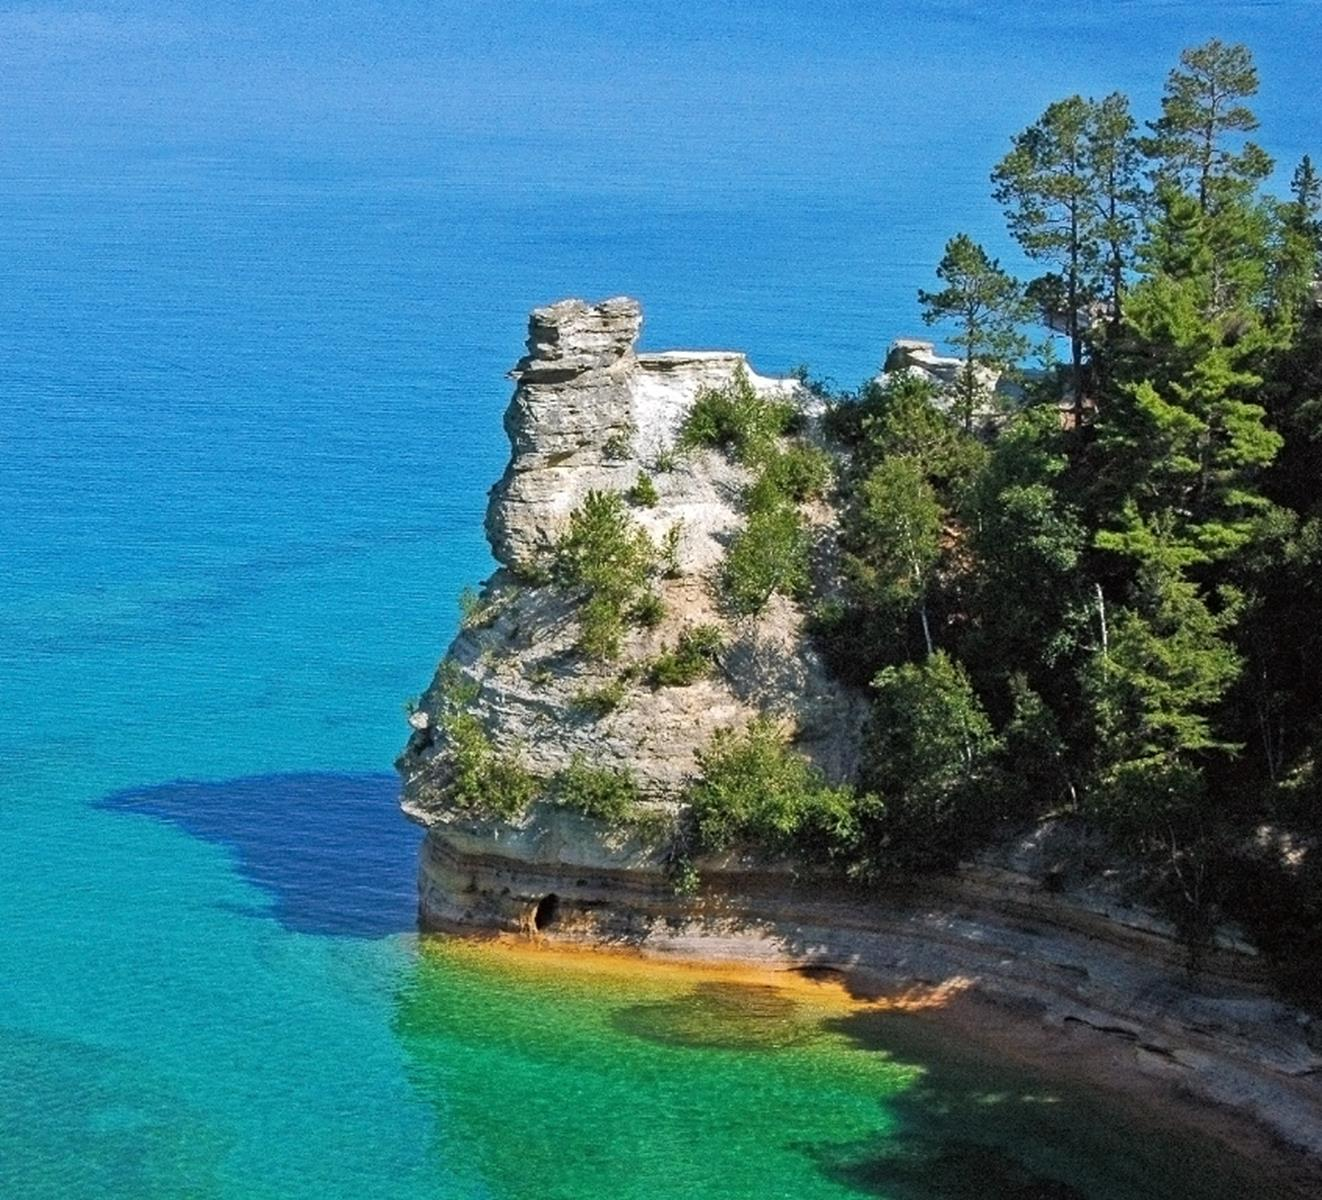 Pictured Rocks National Lakeshore. Credit Charles Dawley at en.wikipedia